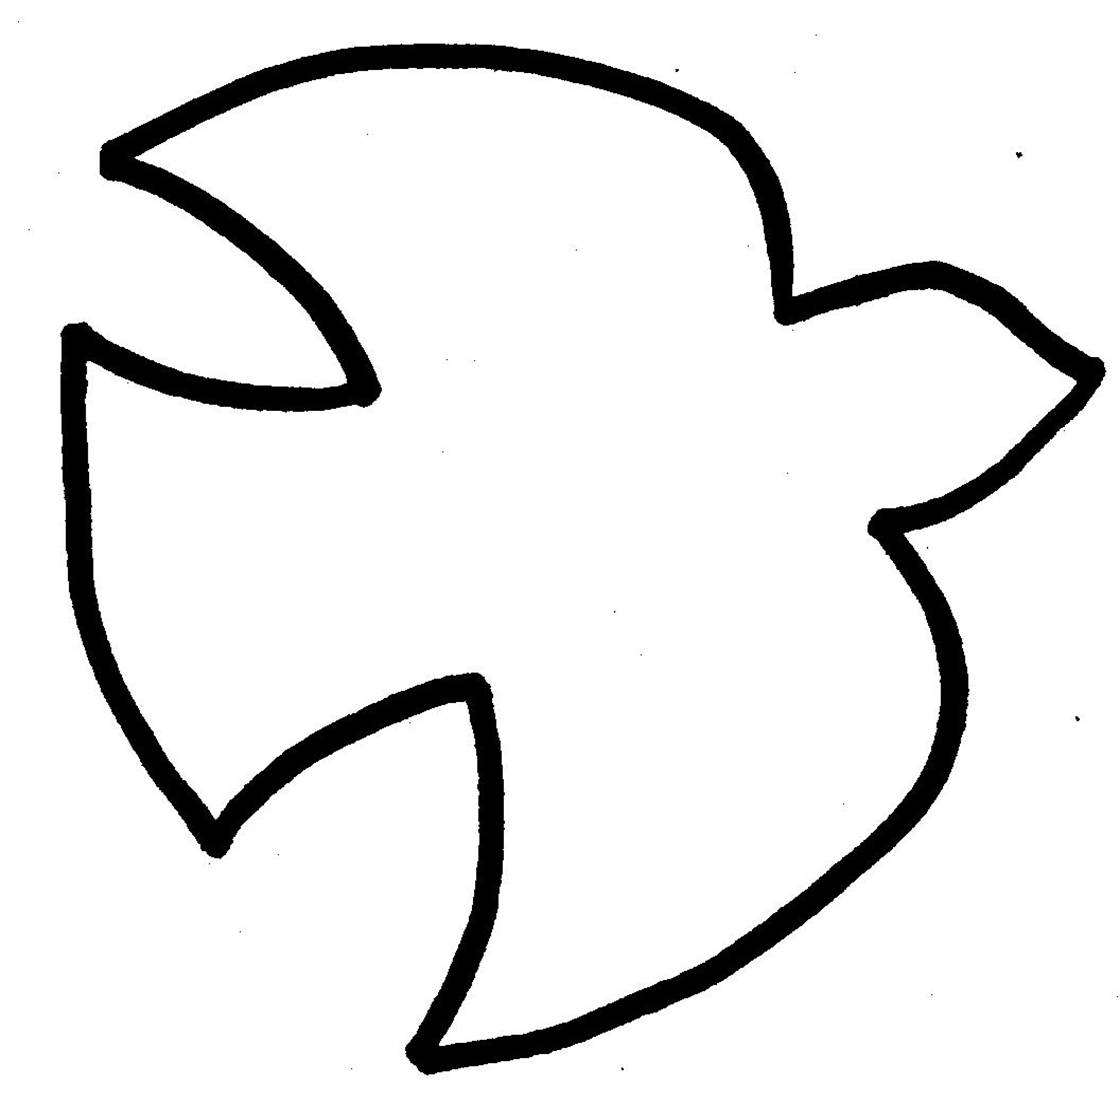 turtle dove template dove drawing outline at getdrawings free download turtle dove template